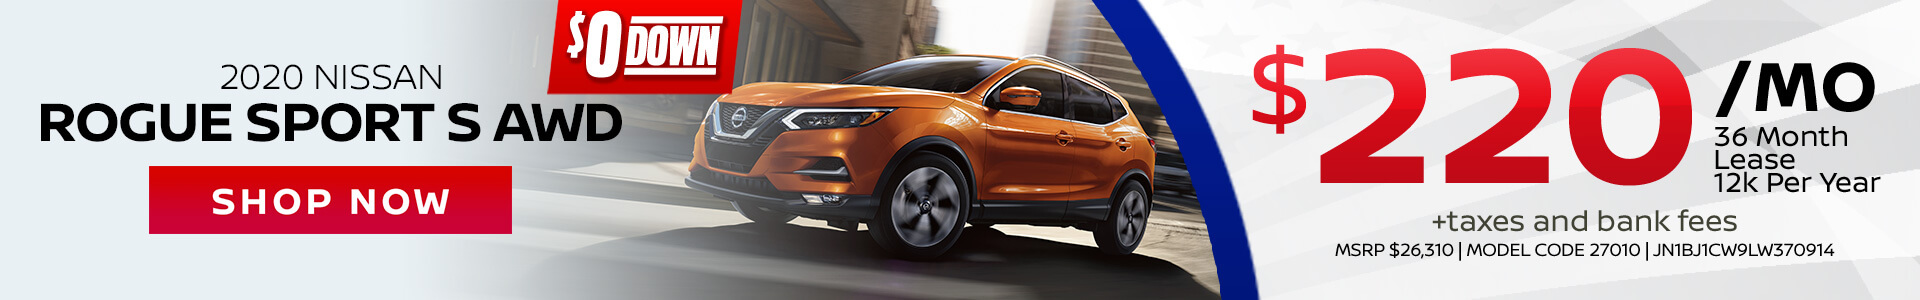 Nissan Rogue Sport $220 Lease